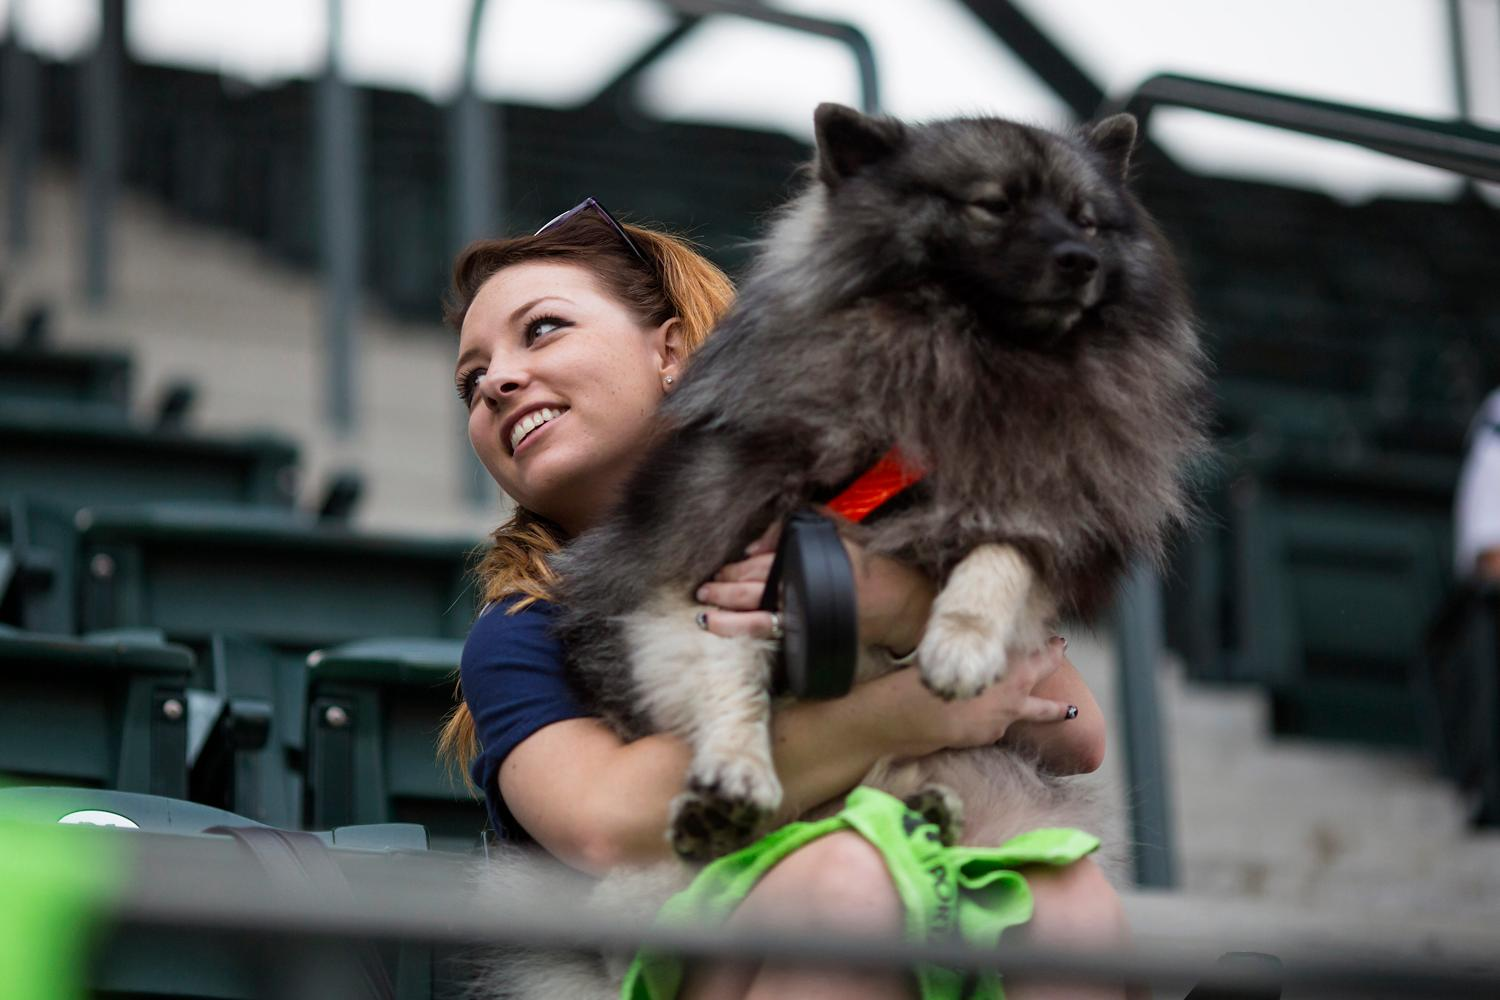 Another night of Bark In the Park at Safeco Field as Mariners fans got to take their four-legged friends to watch the game against the Houston Astros. (Sy Bean / Seattle Refined)